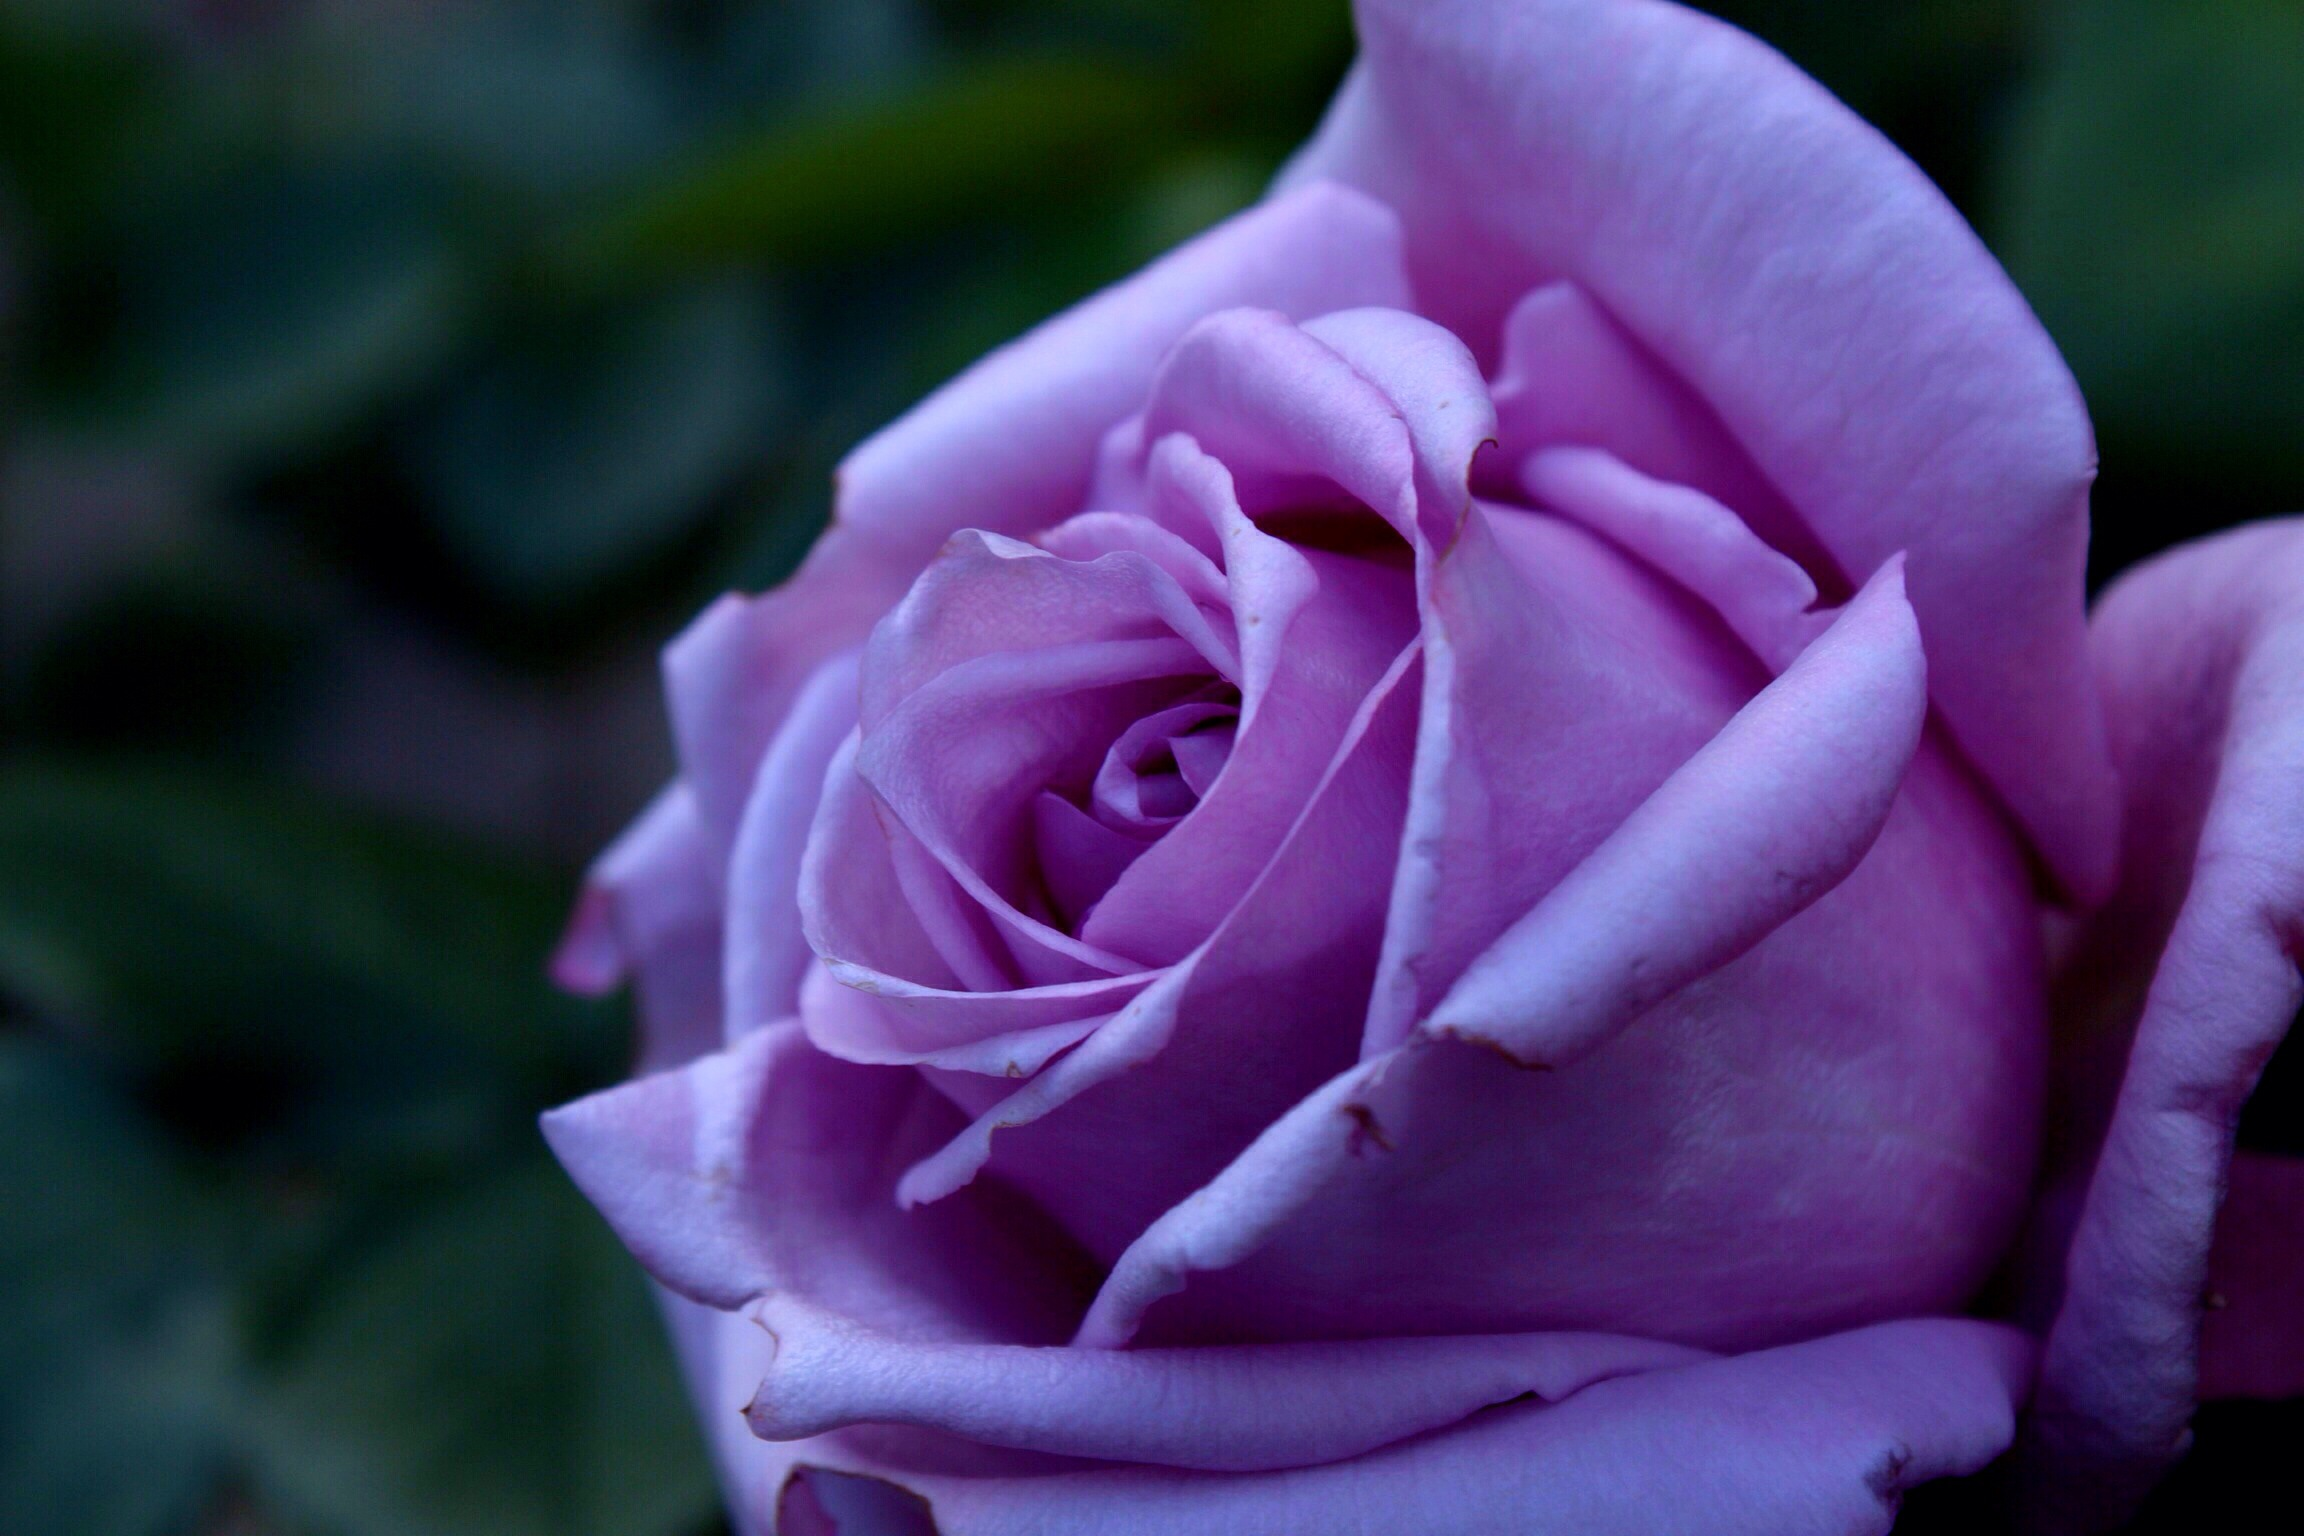 wallpapers of purple roses - photo #29